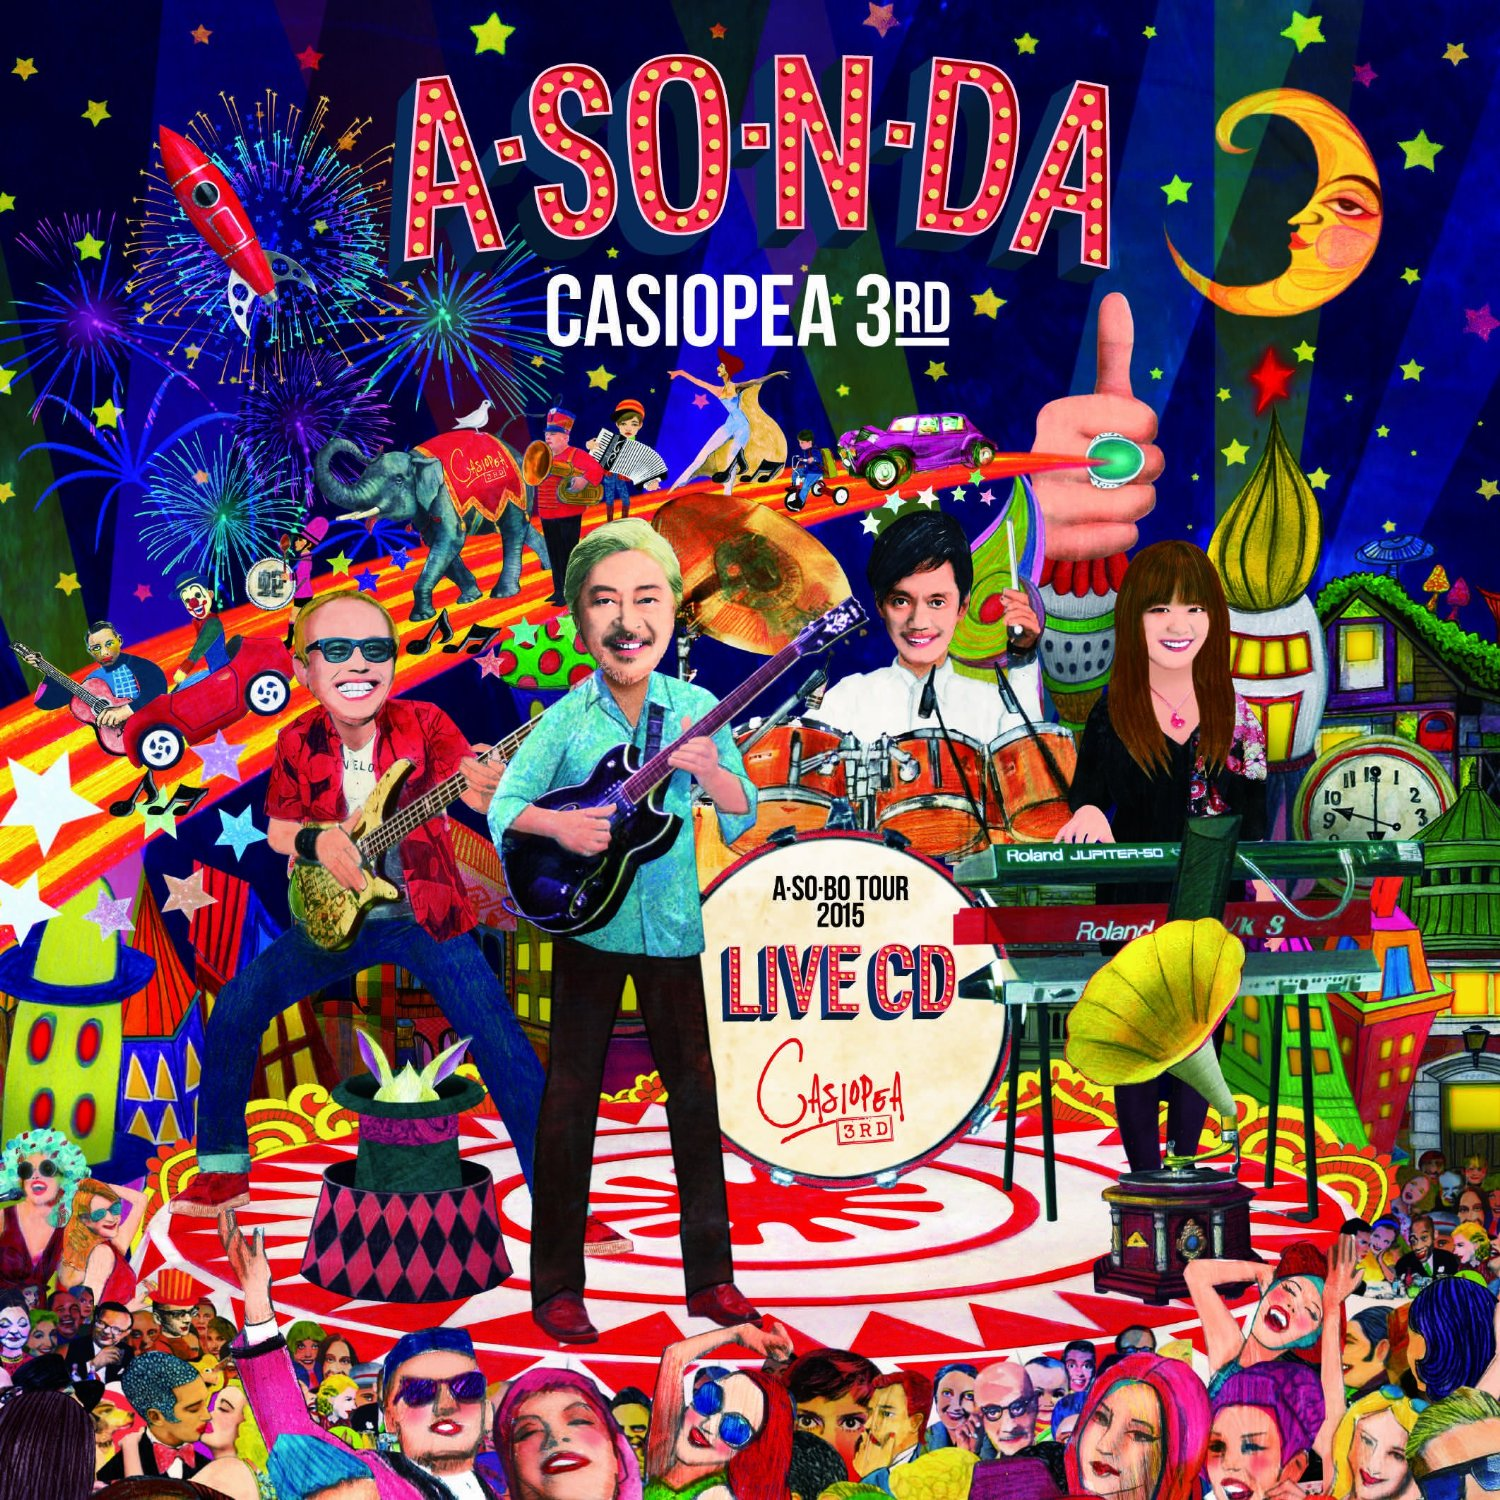 A��SO��N��DA ~A��SO��BO TOUR 2015~